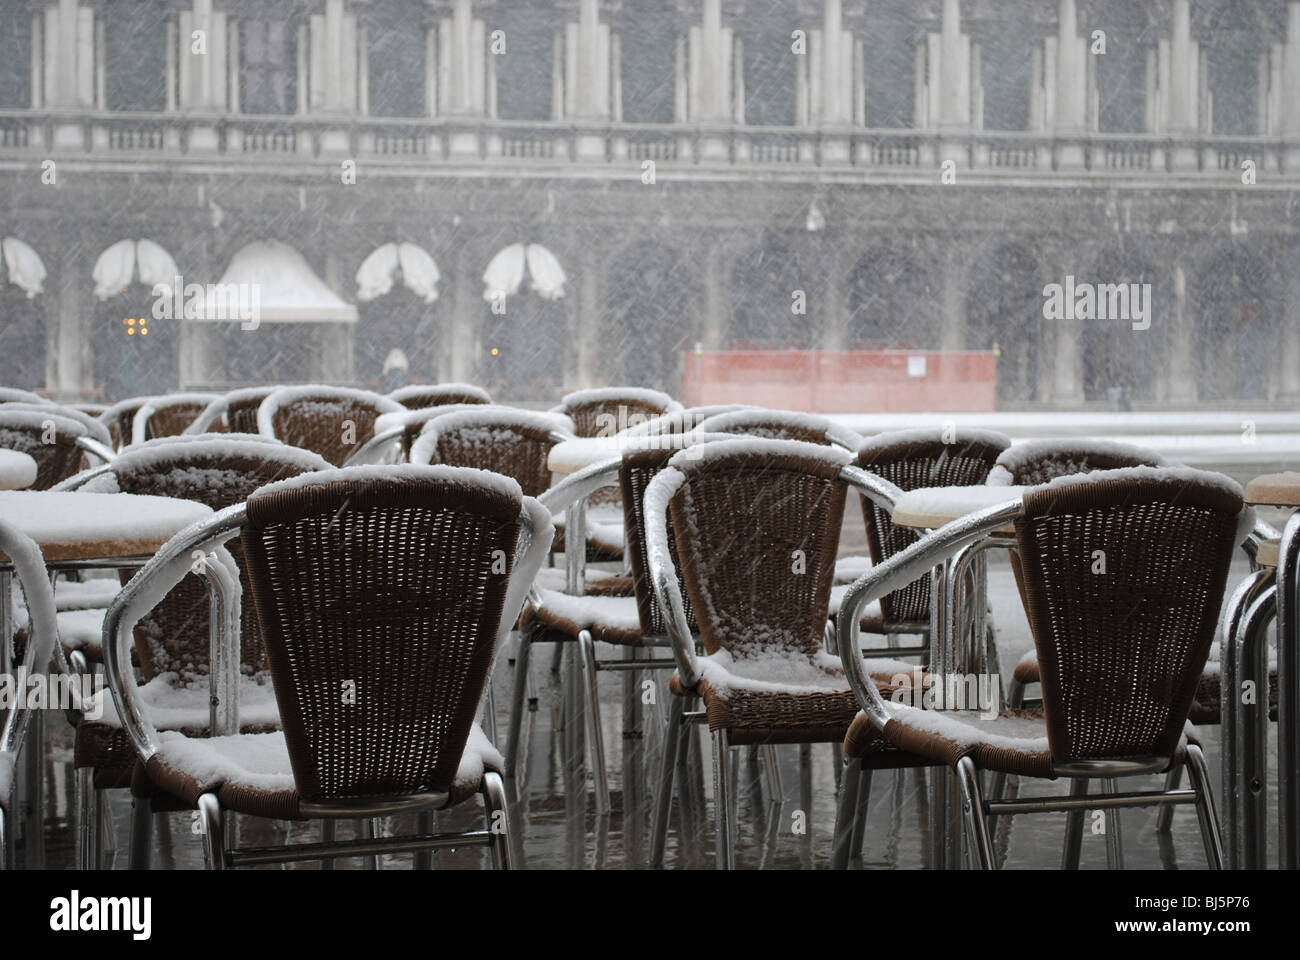 snow white cafe stockfotos snow white cafe bilder alamy. Black Bedroom Furniture Sets. Home Design Ideas